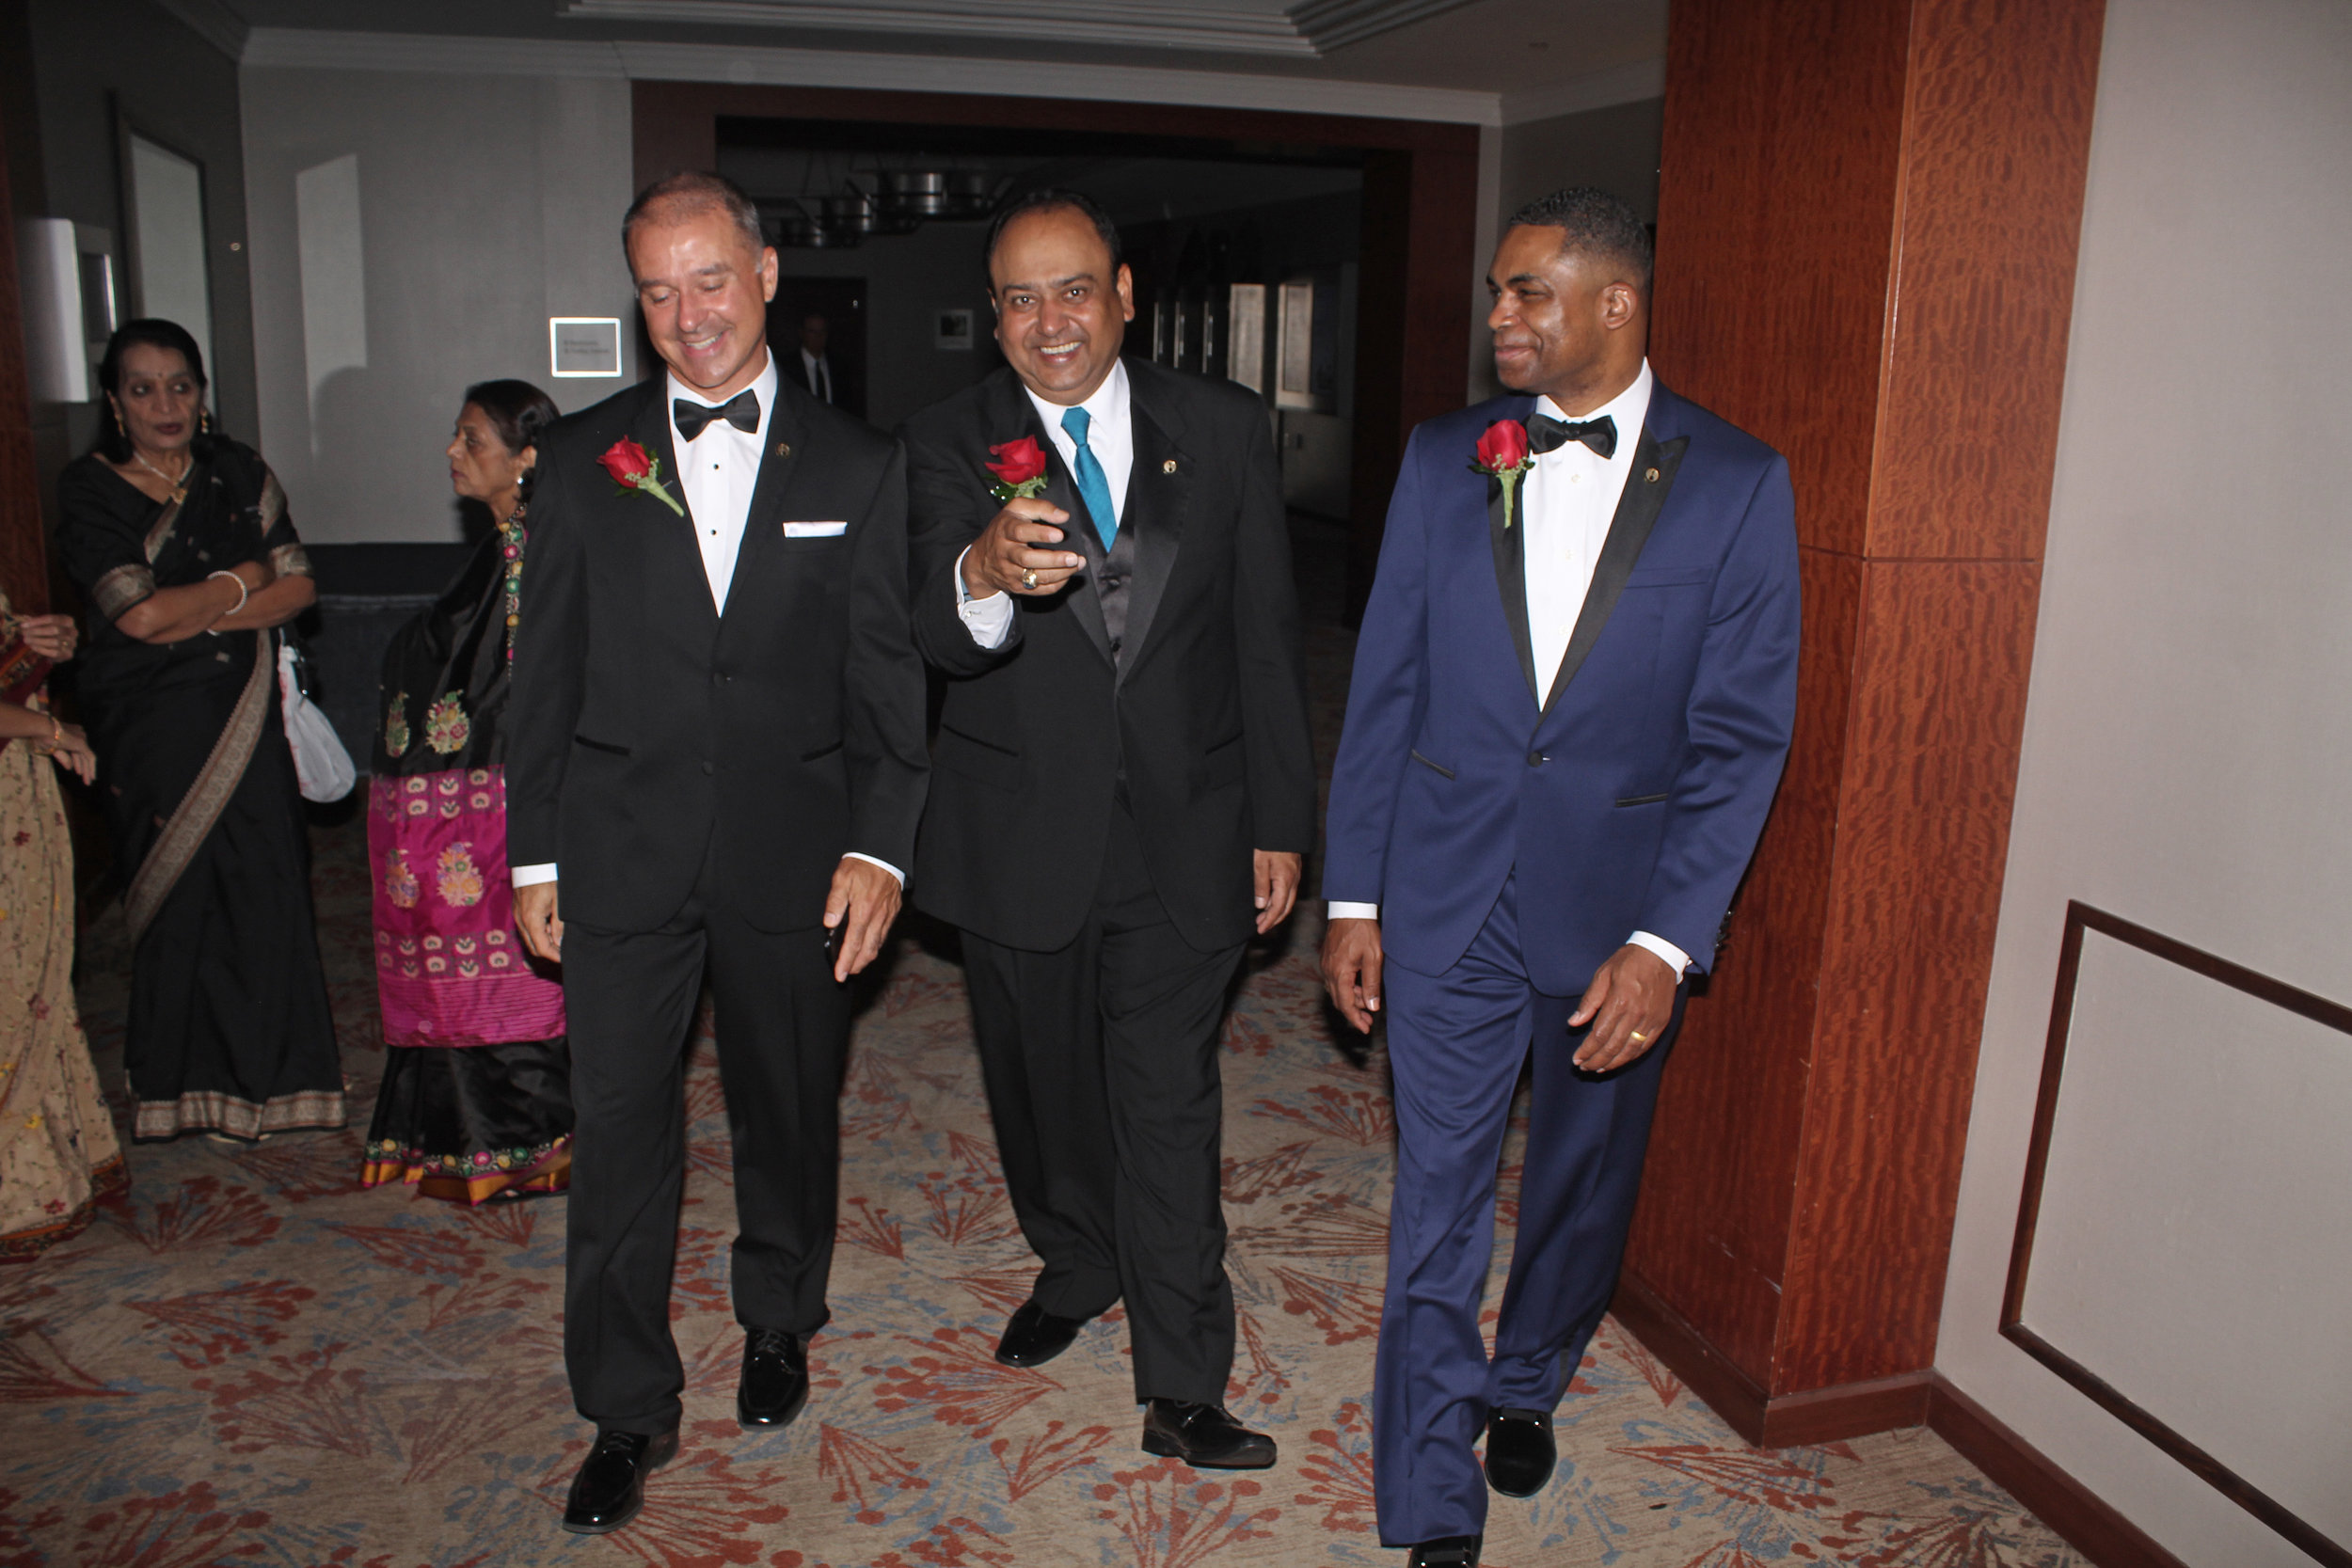 Dashing dads: The honorees make their entrance in style.